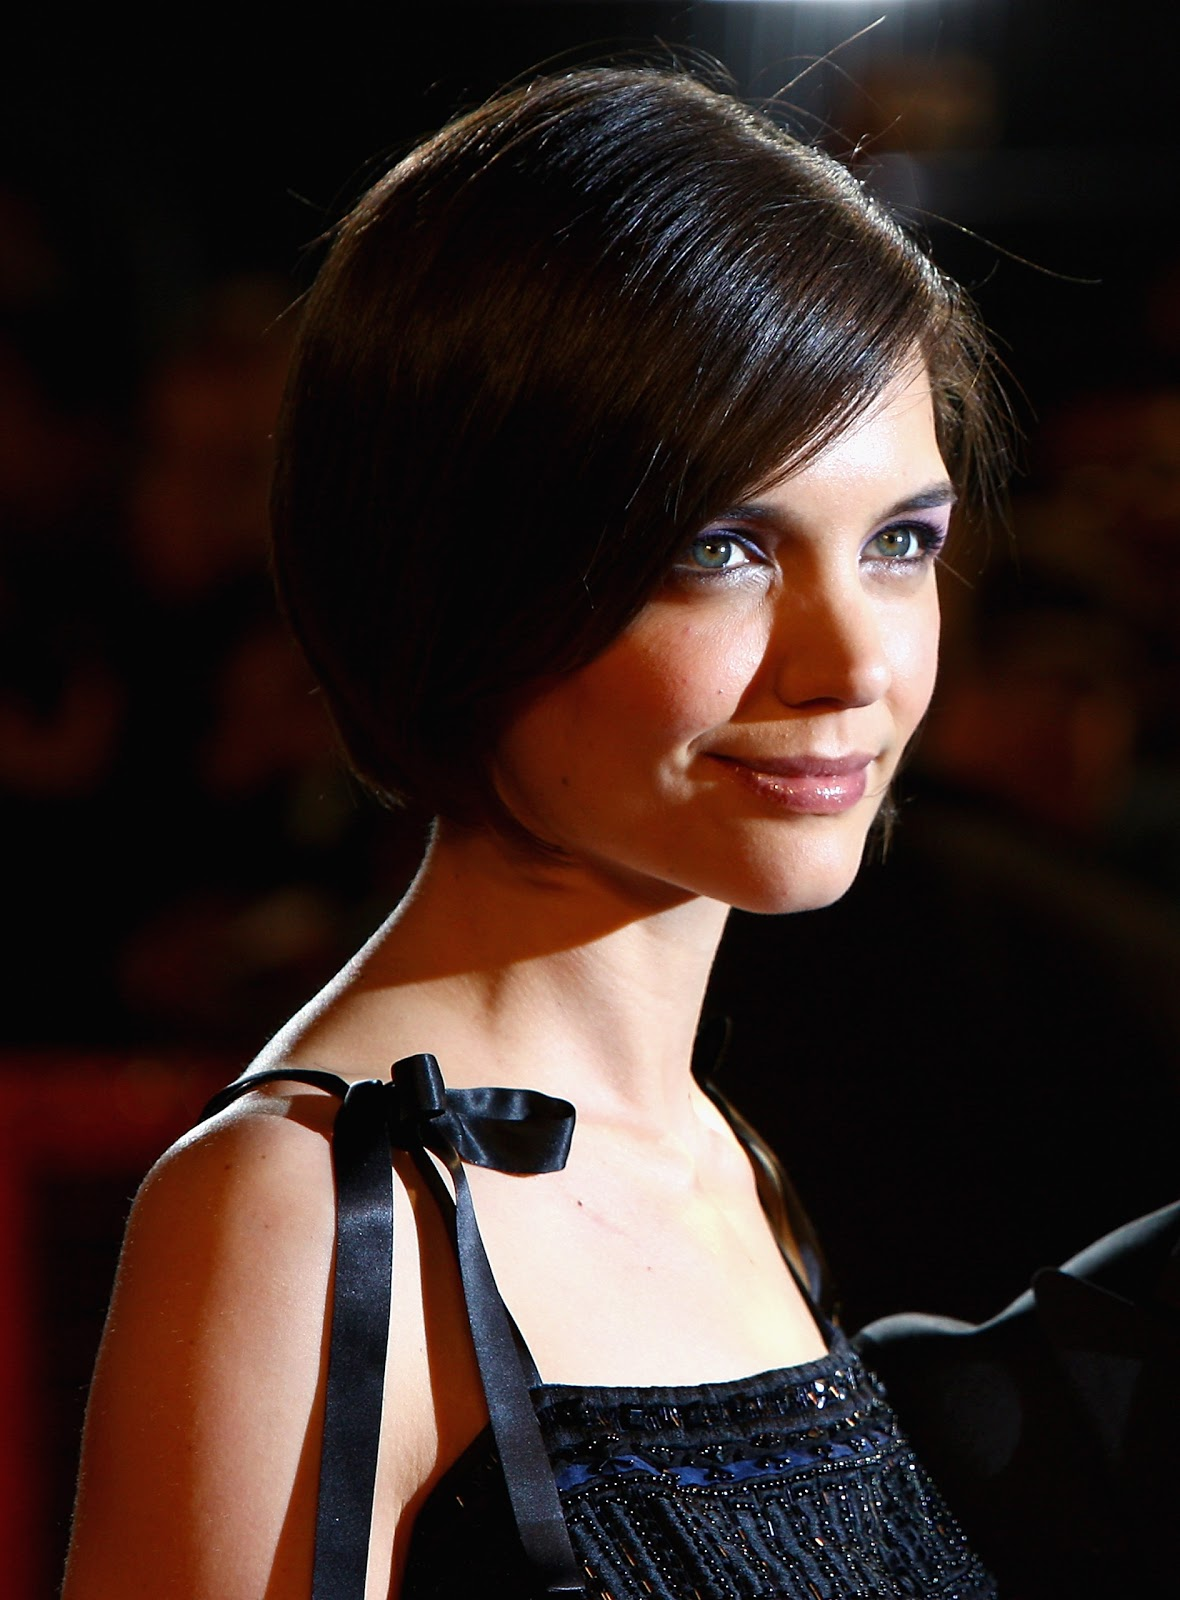 Hairstyles Popular 2012 Short Bob Hairstyle For Oval